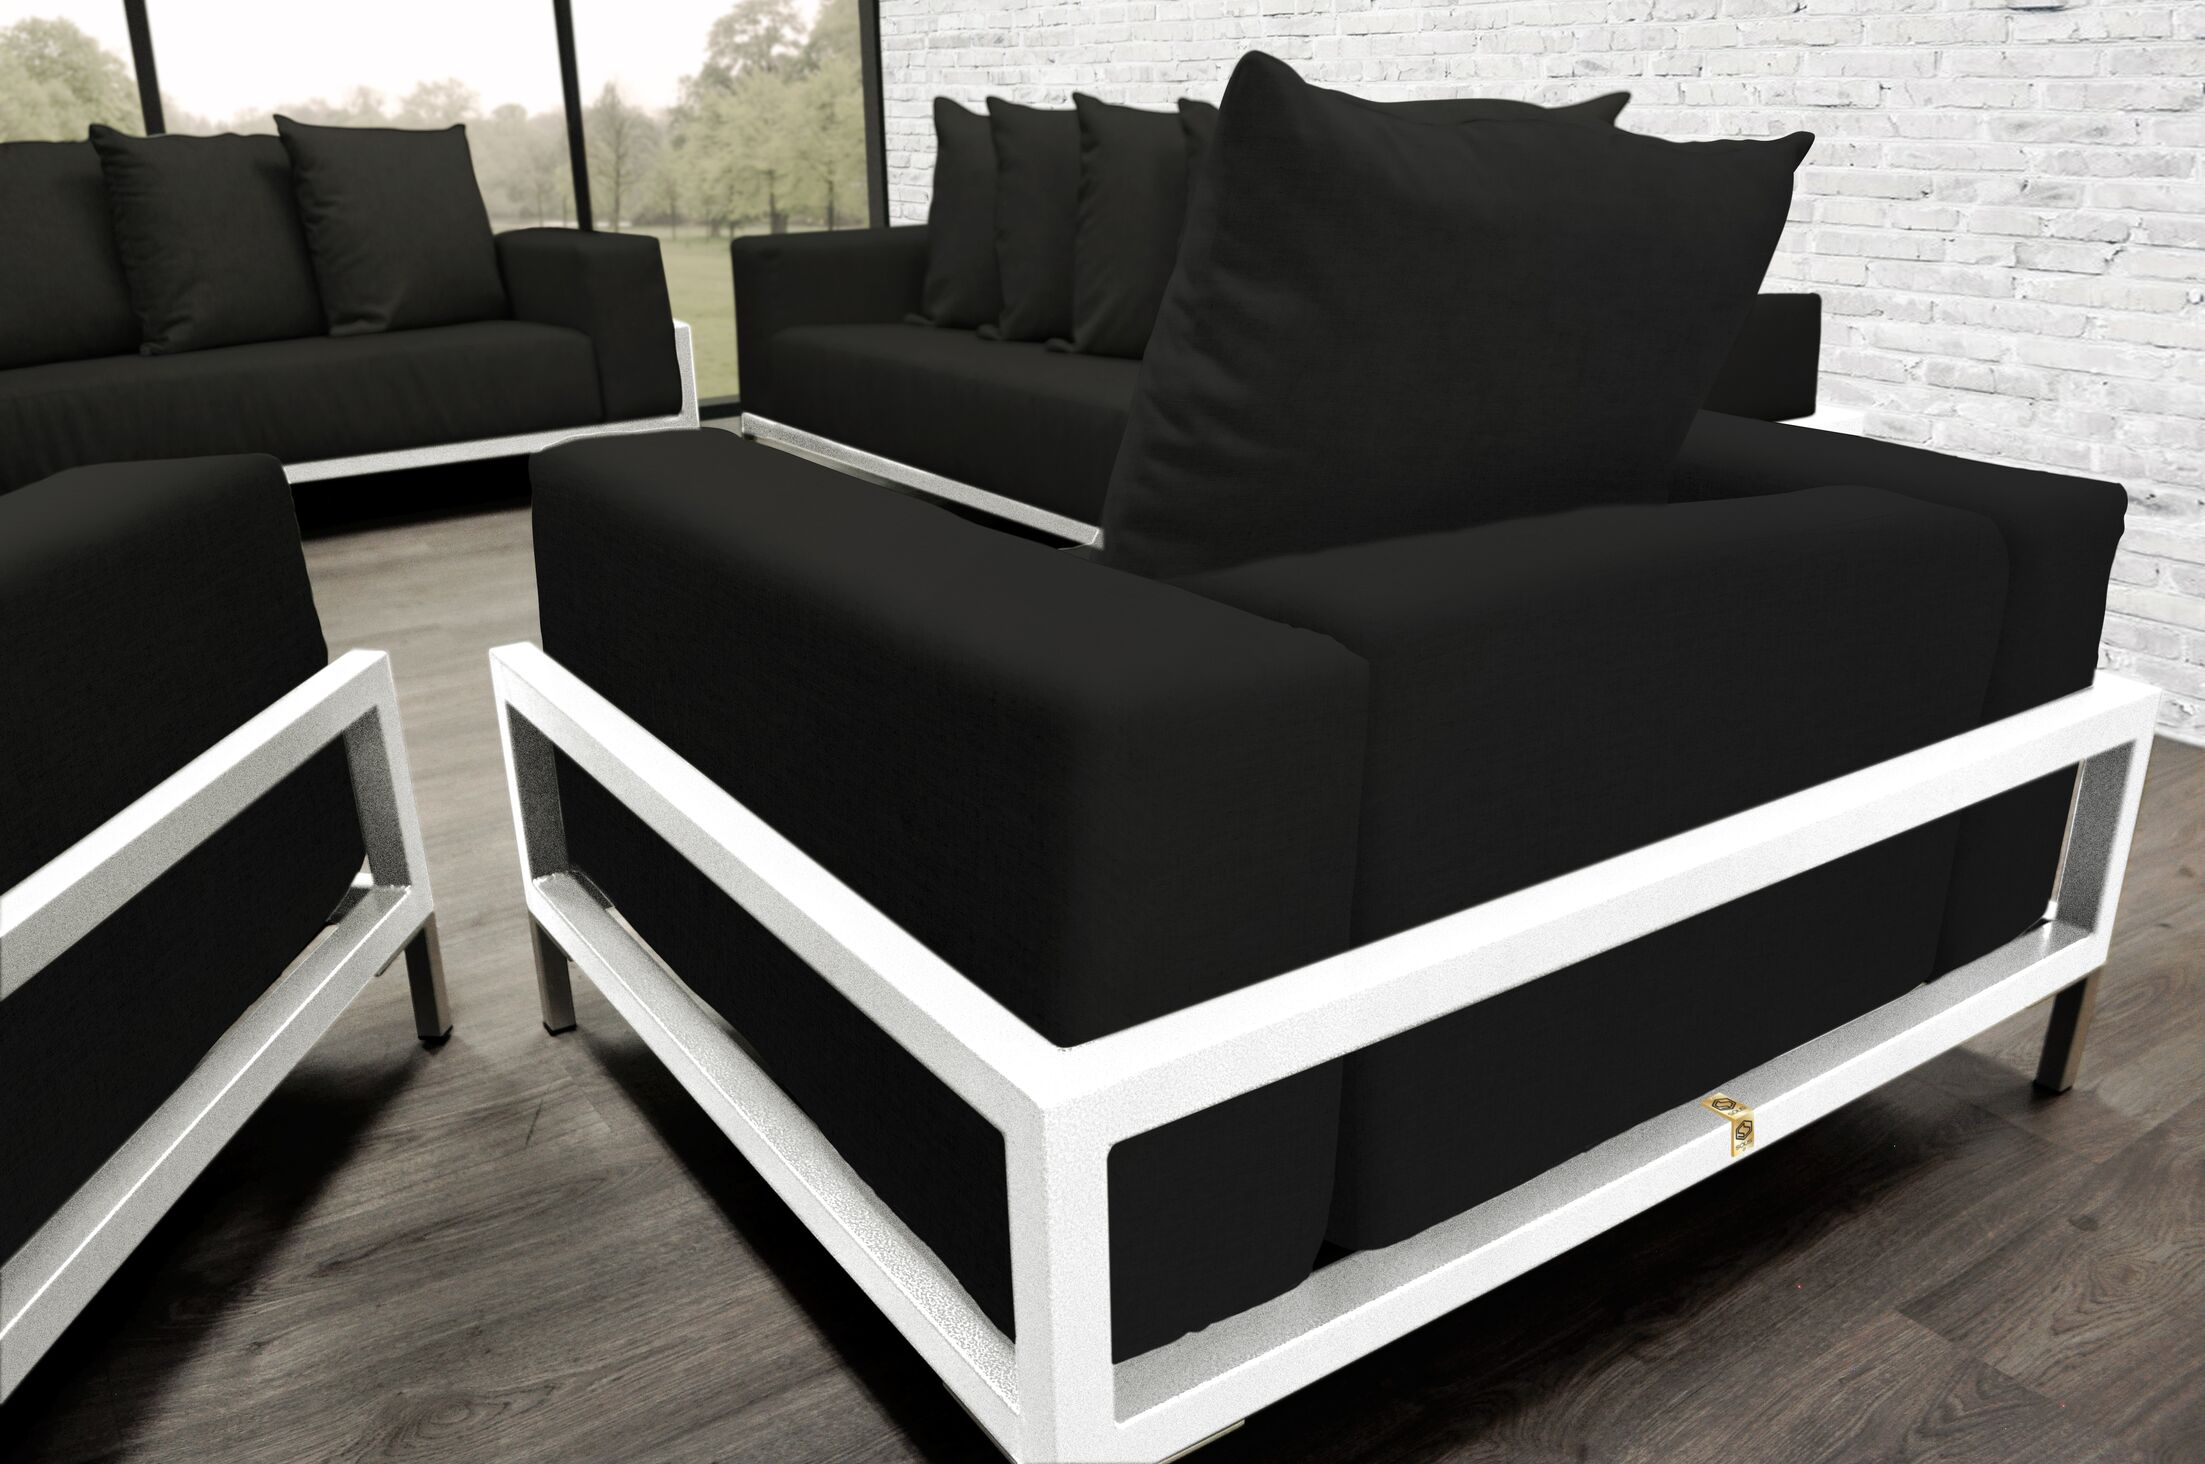 Tilly Patio 4 Piece Sofa Set With Cushions Accent Pillow Fabric: Black, Fabric: Black